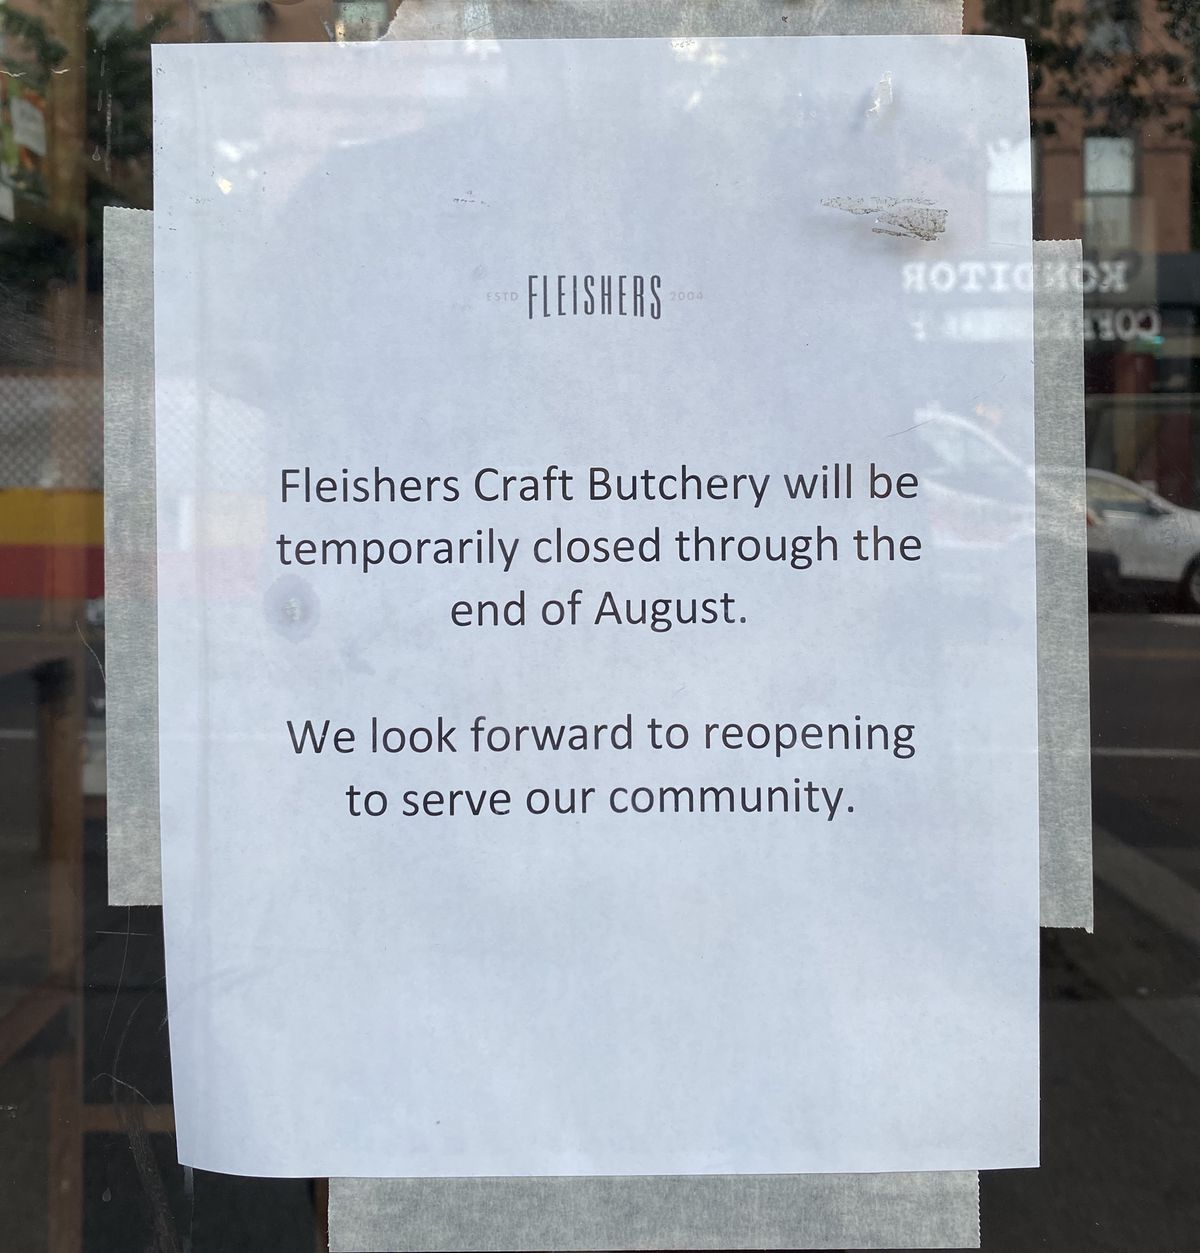 """A sign posted to the front door of a glass door reads, """"Fleishers Craft Butchery will be temporarily closed through the end of August. We look forward to reopening to serve our community."""""""